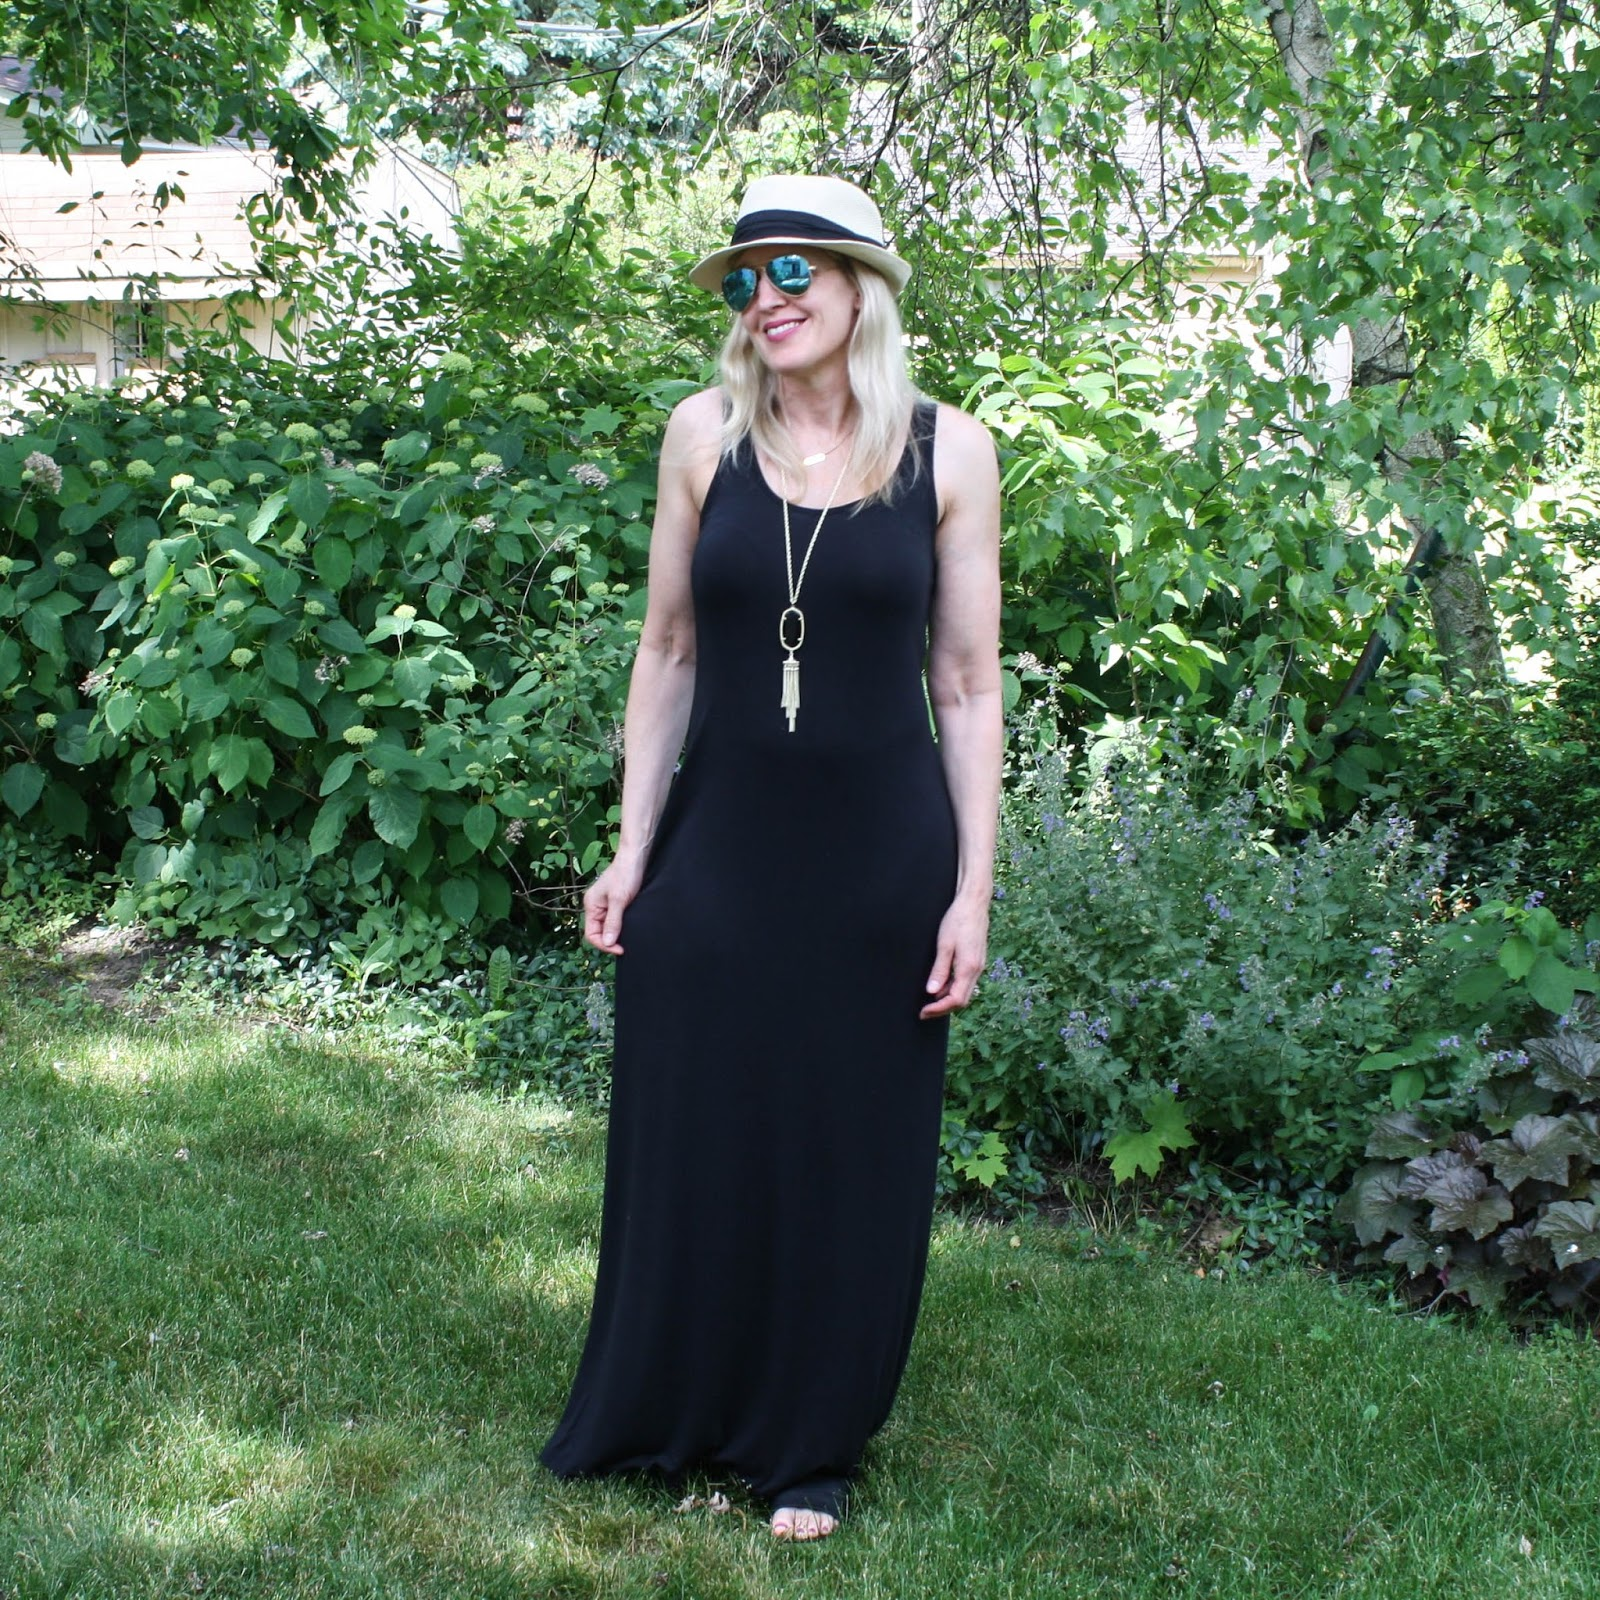 Black Maxi Dress + Panama Hat